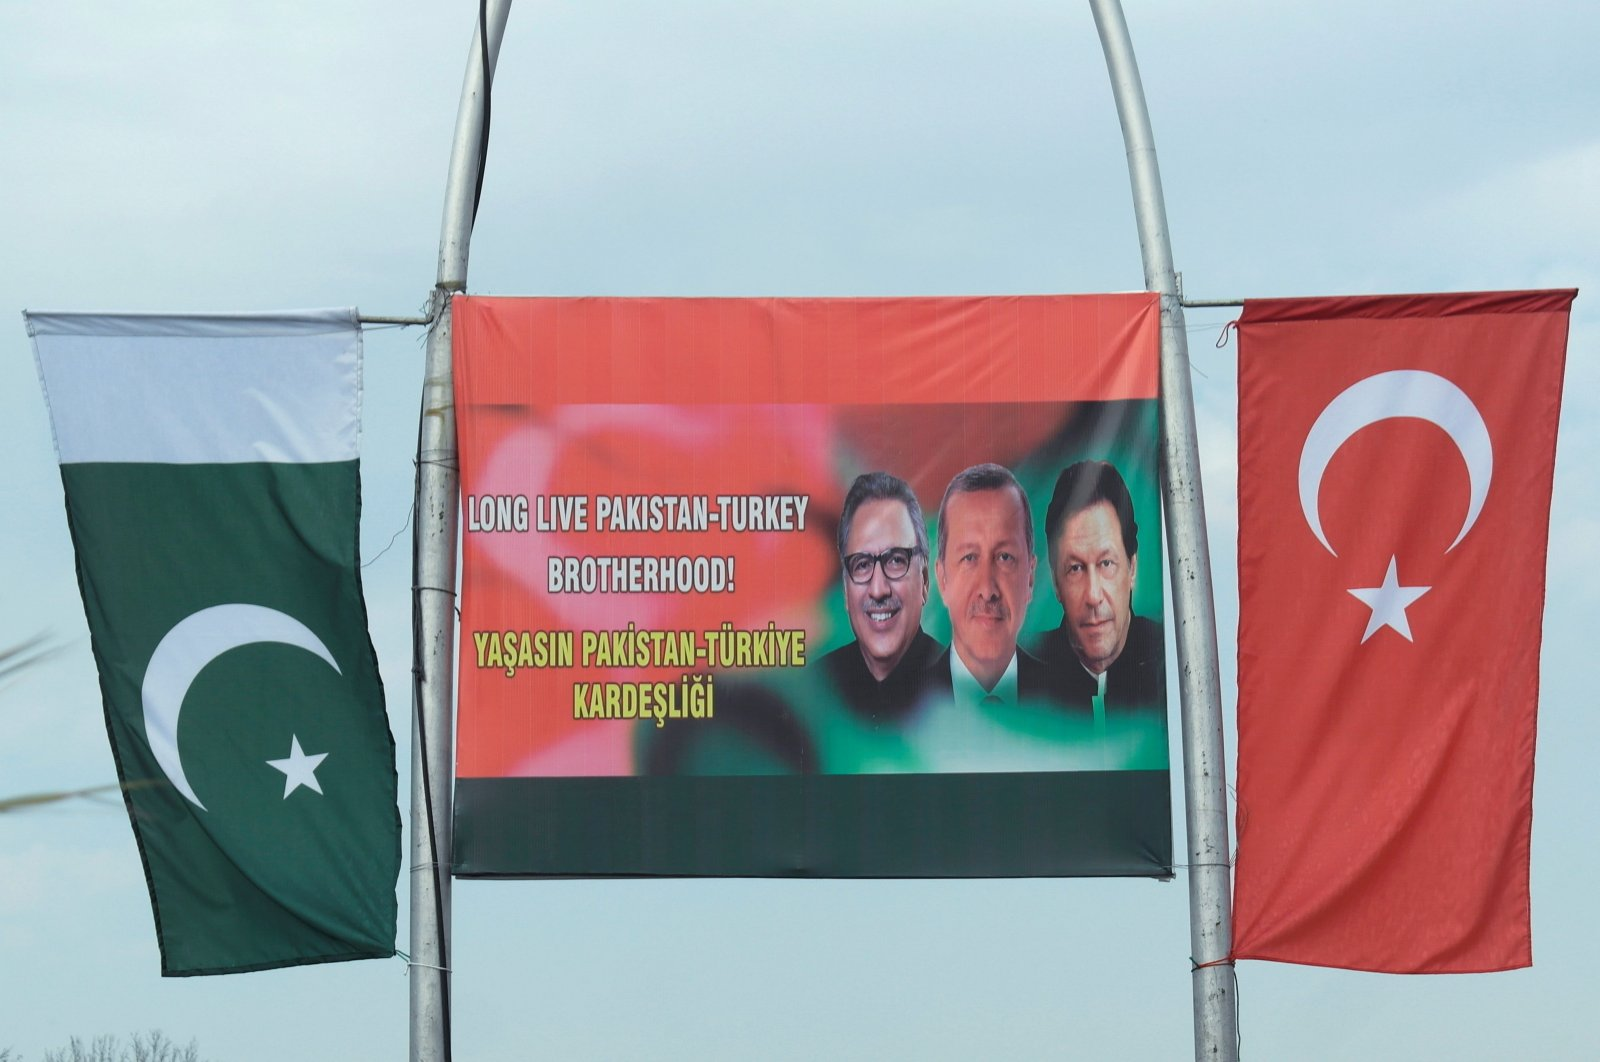 The national flags of Pakistan and Turkey are seen on poles next to a sign showing Pakistani President Arif Alvi (L), Turkish President Recep Tayyip Erdoğan (C) and Pakistani Prime Minister Imran Khan (R), in Islamabad, Pakistan, Feb. 13, 2020. (Reuters Photo)